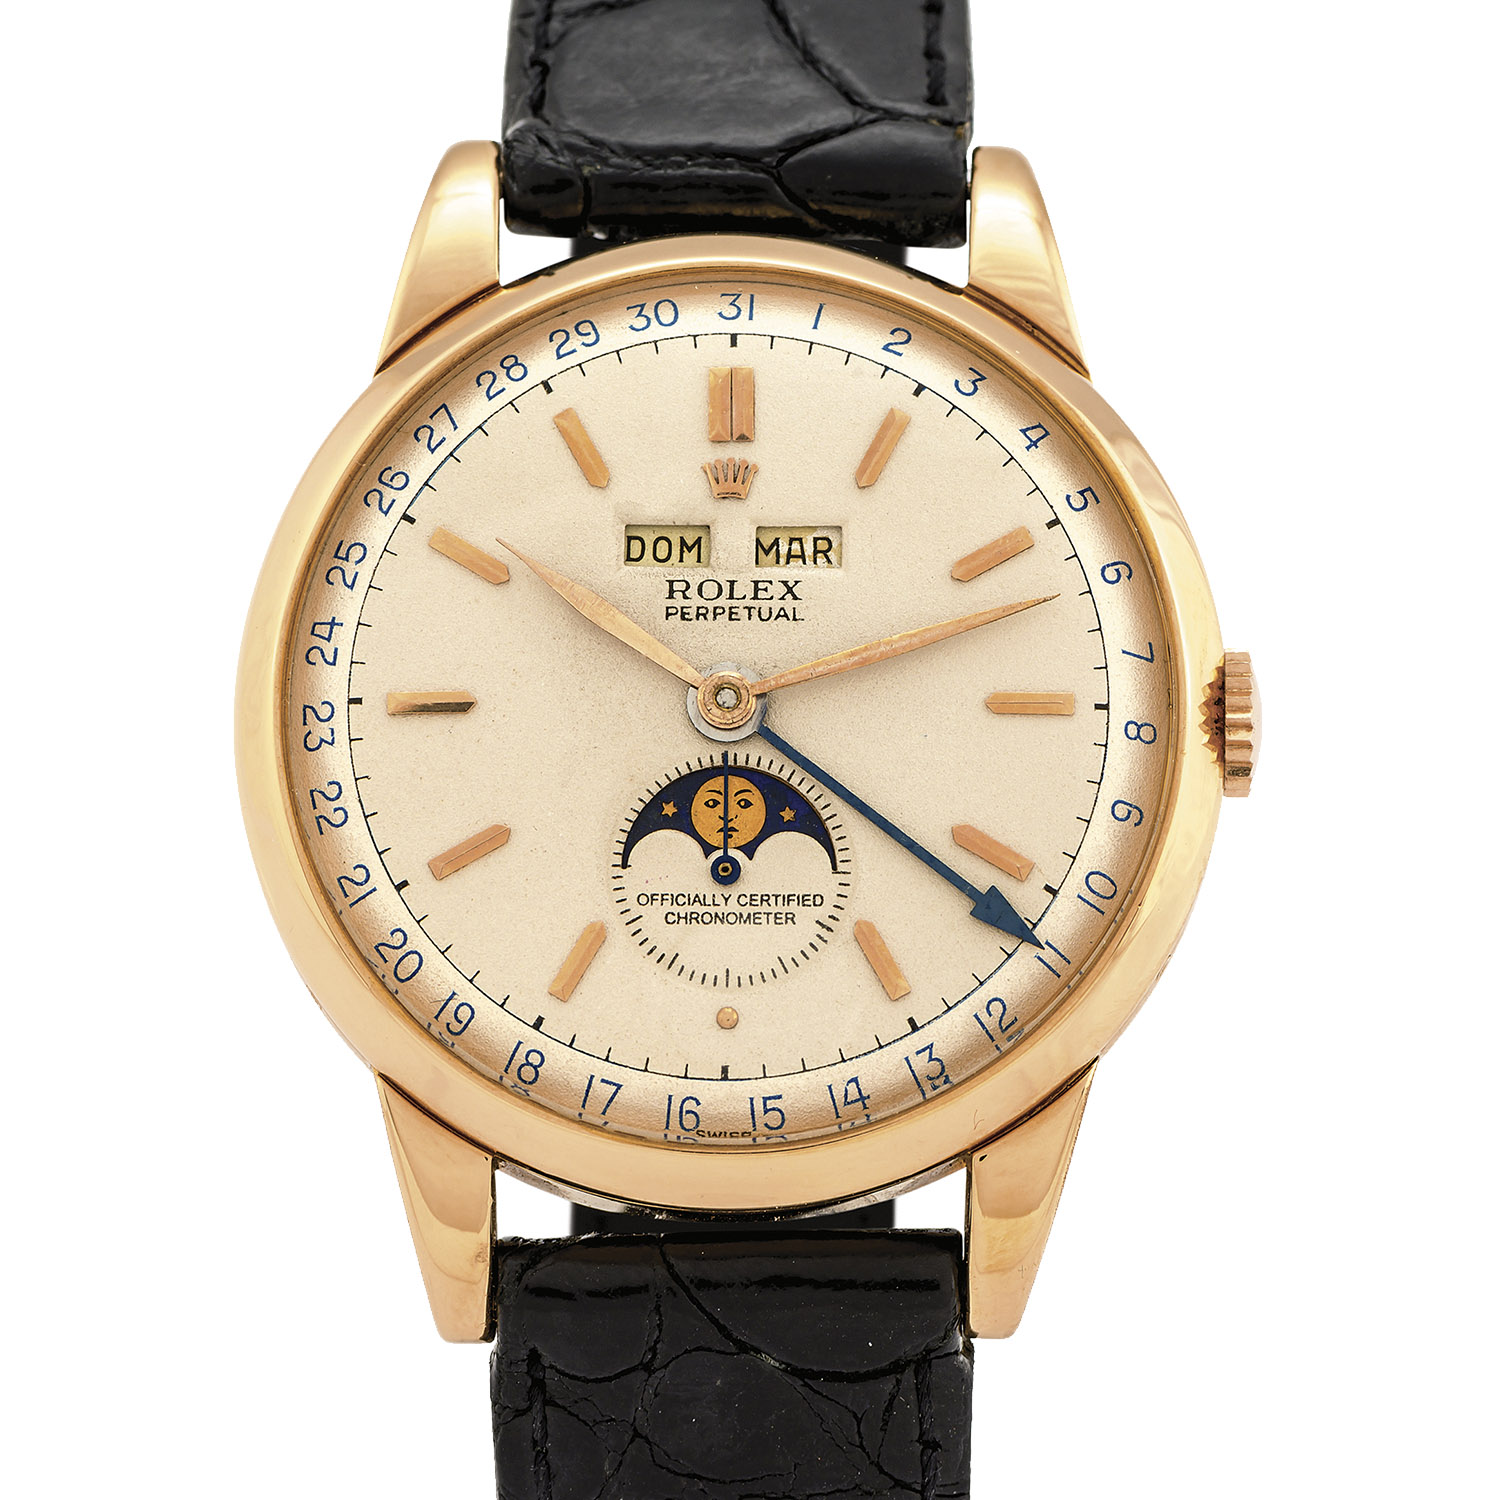 Rolex 8171 Moonphase padellone - Source: Antiquorum